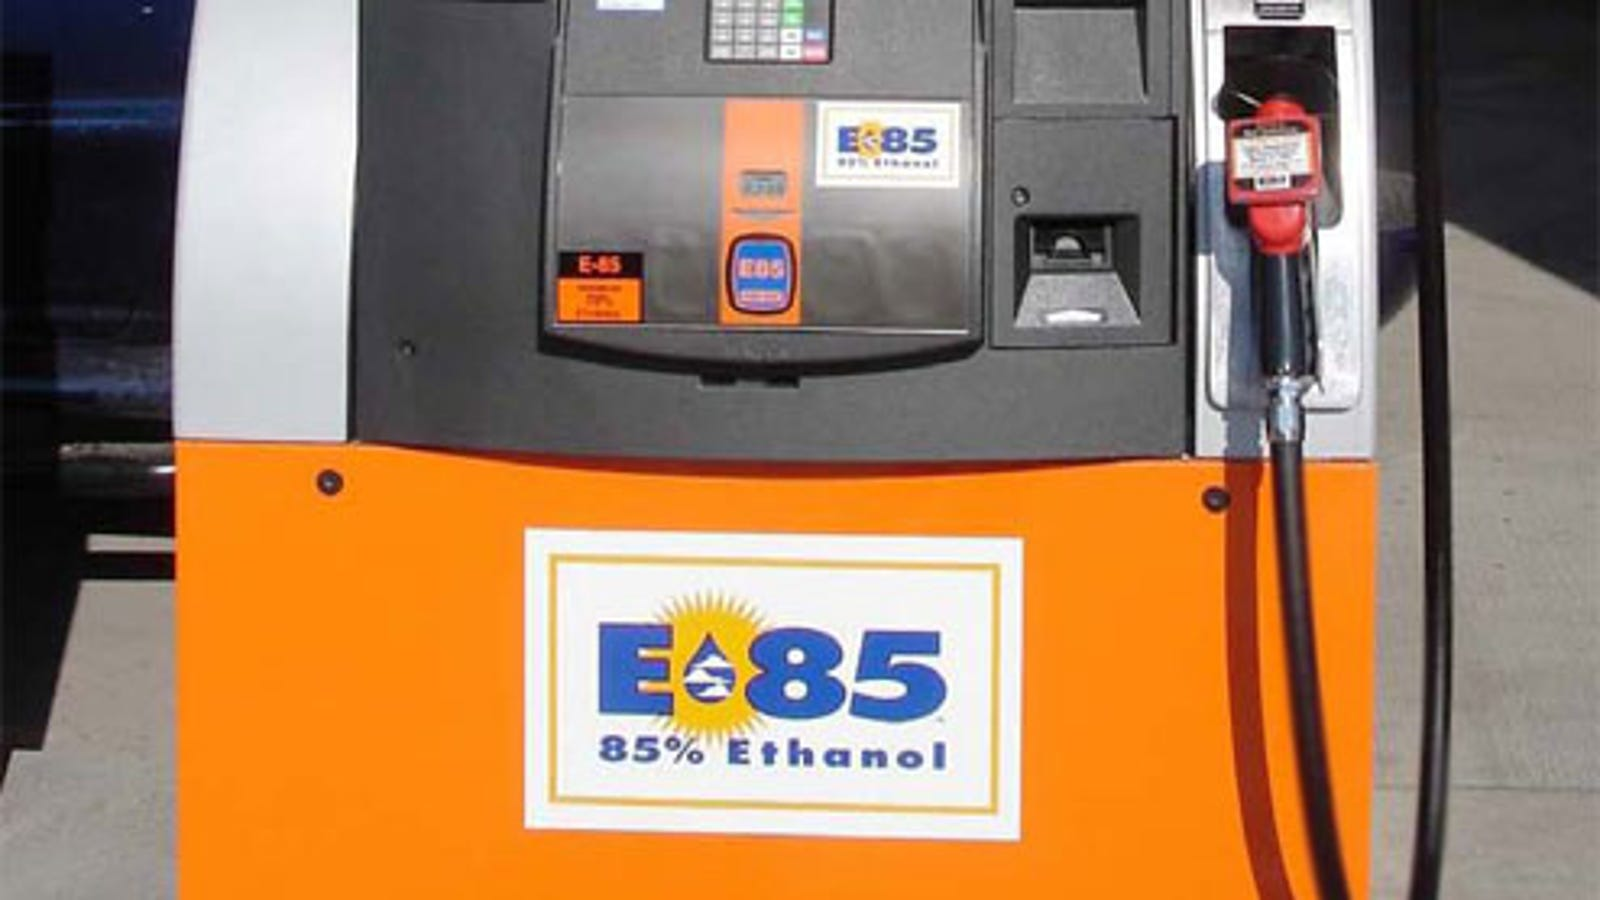 E85 Gas Pumps Pass 1,800 Mark, Still Can't Find One In Sarah